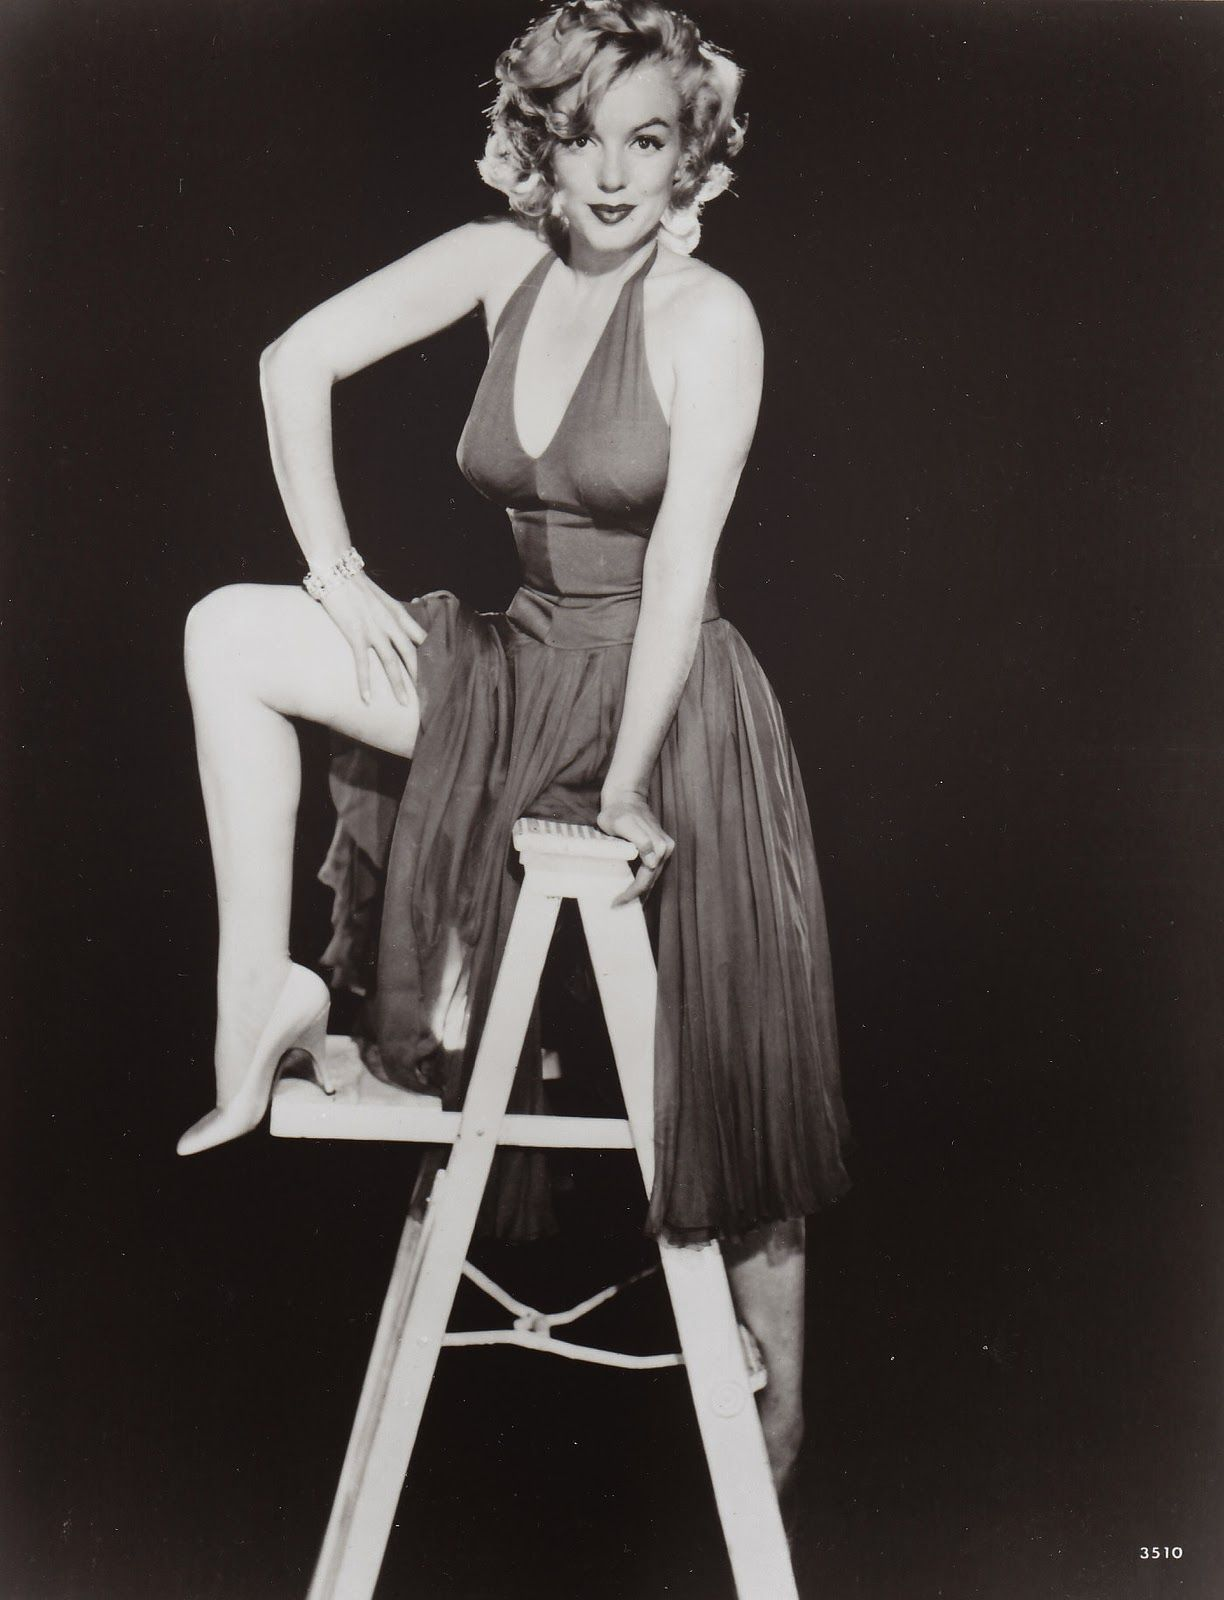 vintage everyday: Rare and Beautiful Portrait Photography of Marilyn Monroe from the 1950s